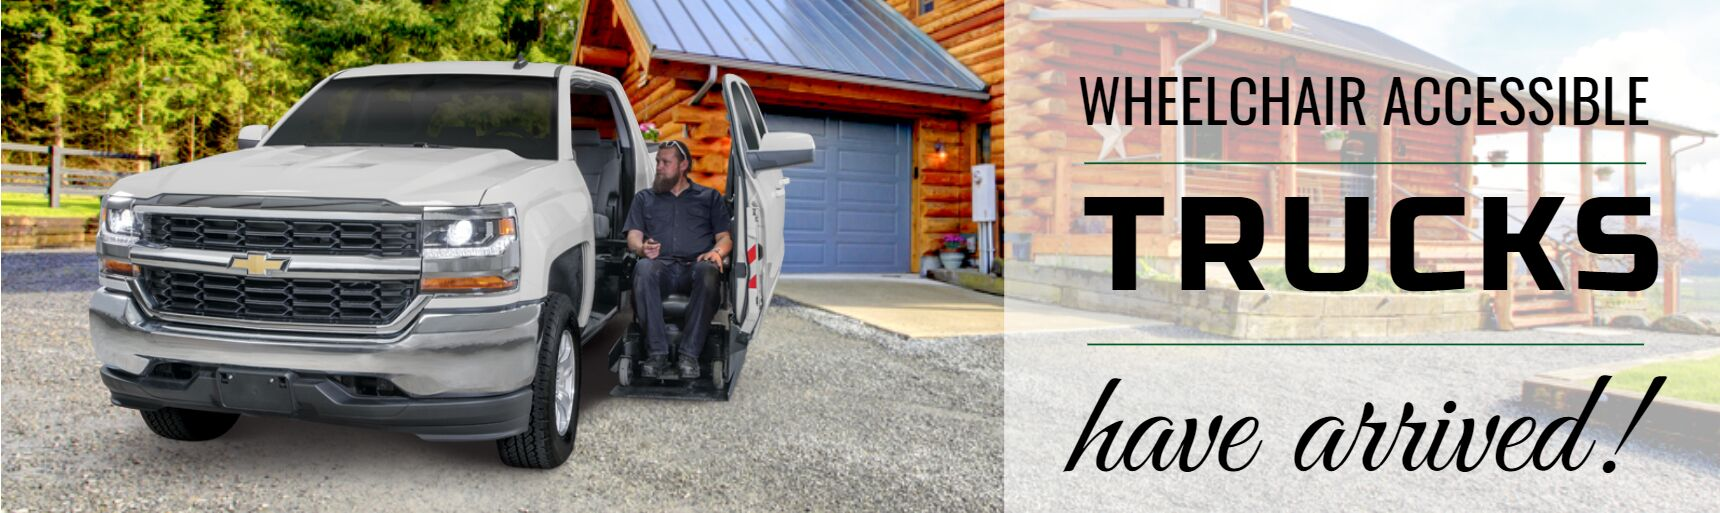 Accessible Trucks are Here